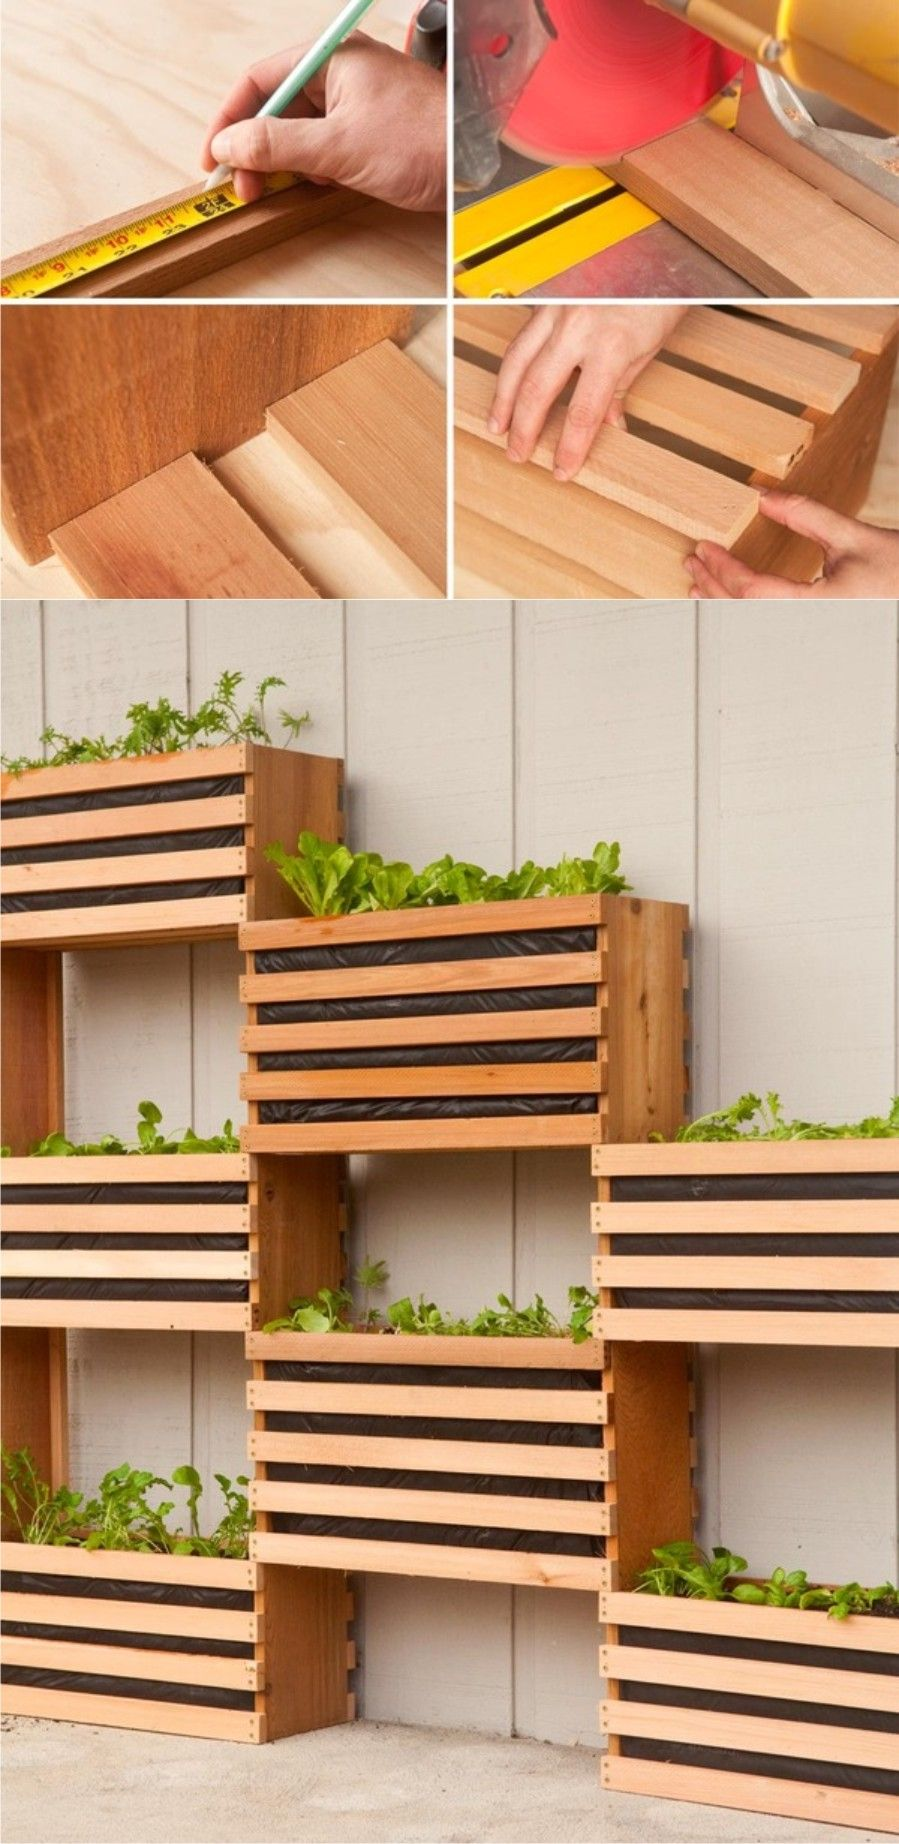 Jard n vertical diy patios gardens and pallets - Jardin vertical pallet ...